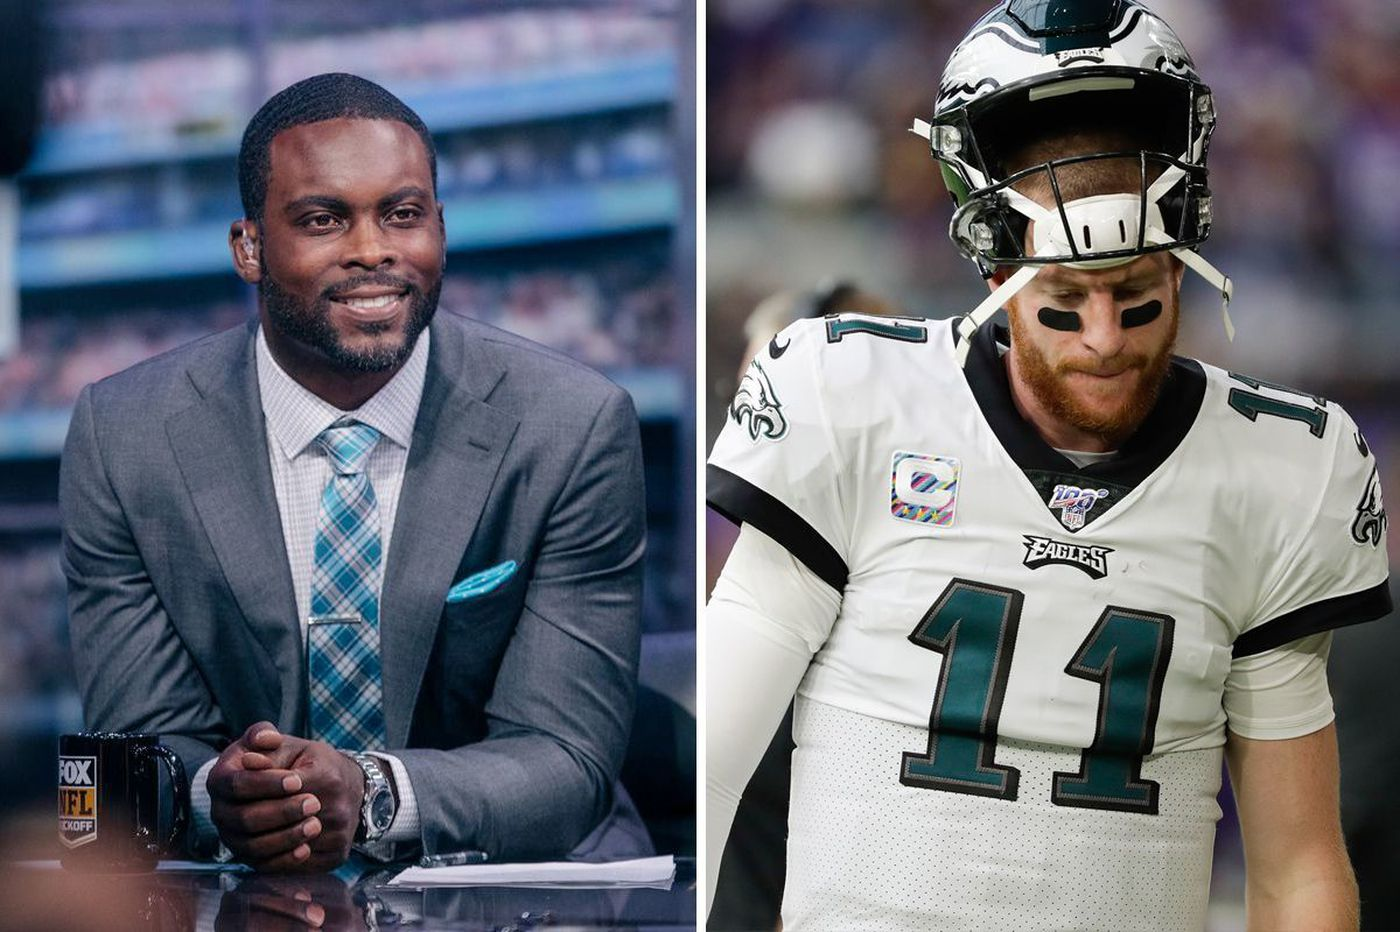 Michael Vick thinks Carson Wentz will fail, questions his character